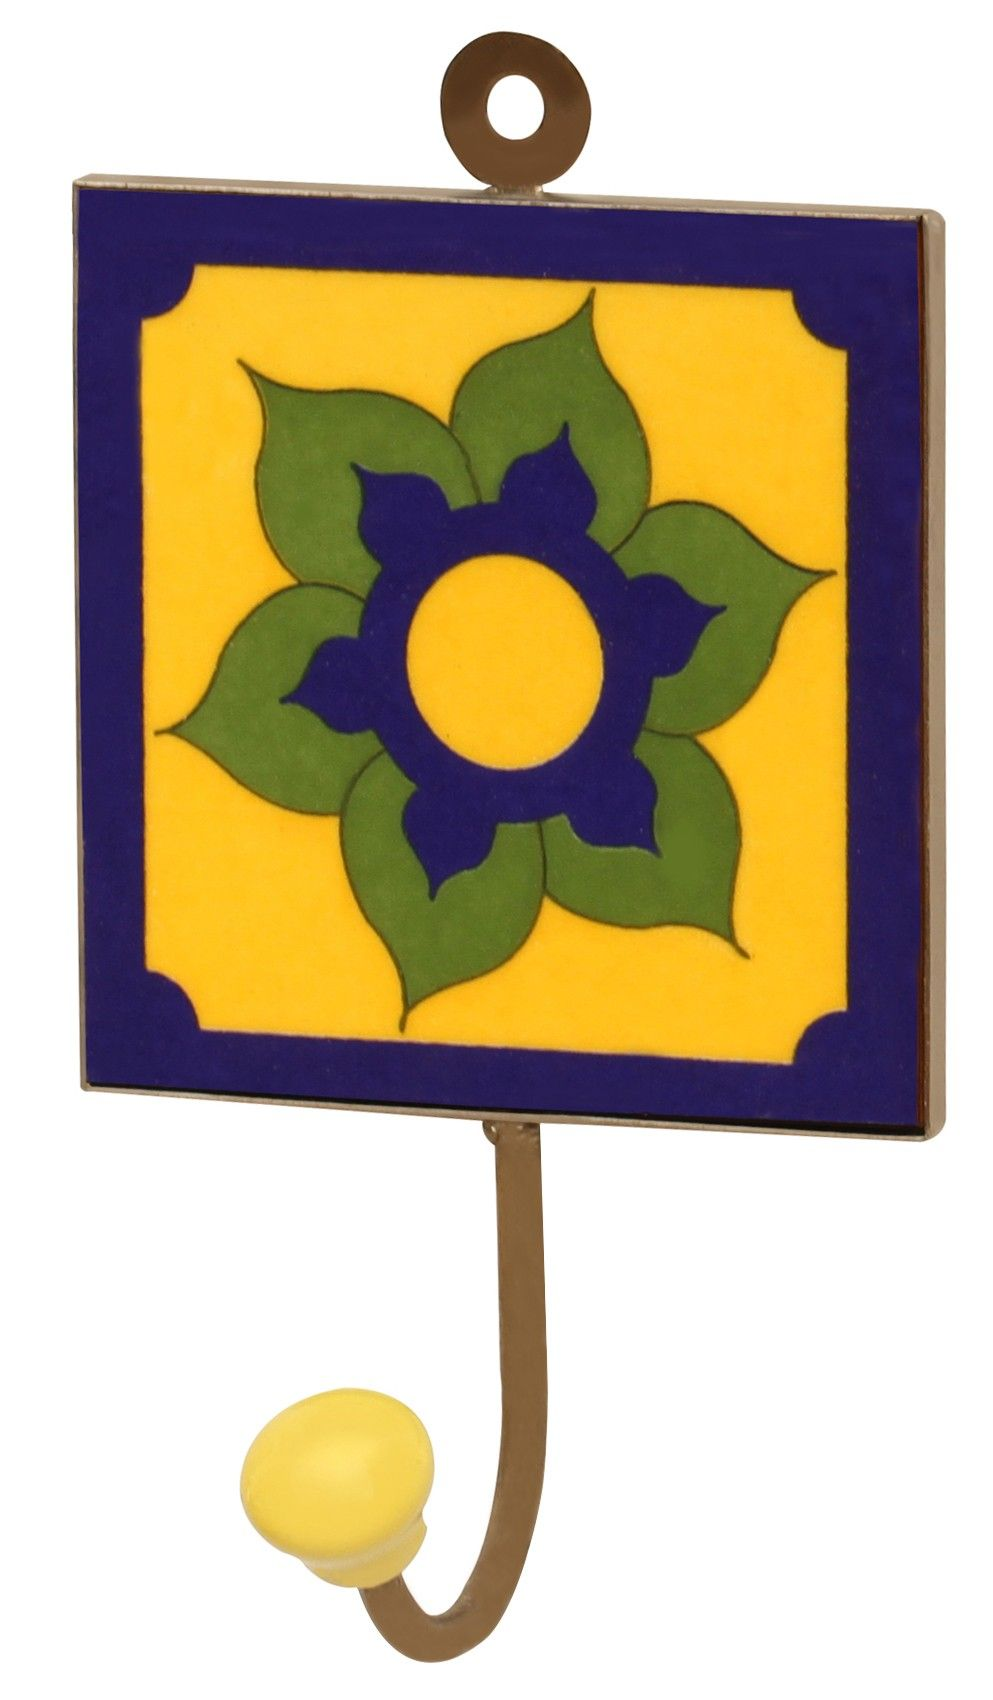 "Yellow-Blue Effects - #Handmade 6.2"" #Ceramic Wall-#Hook with Floral ..."